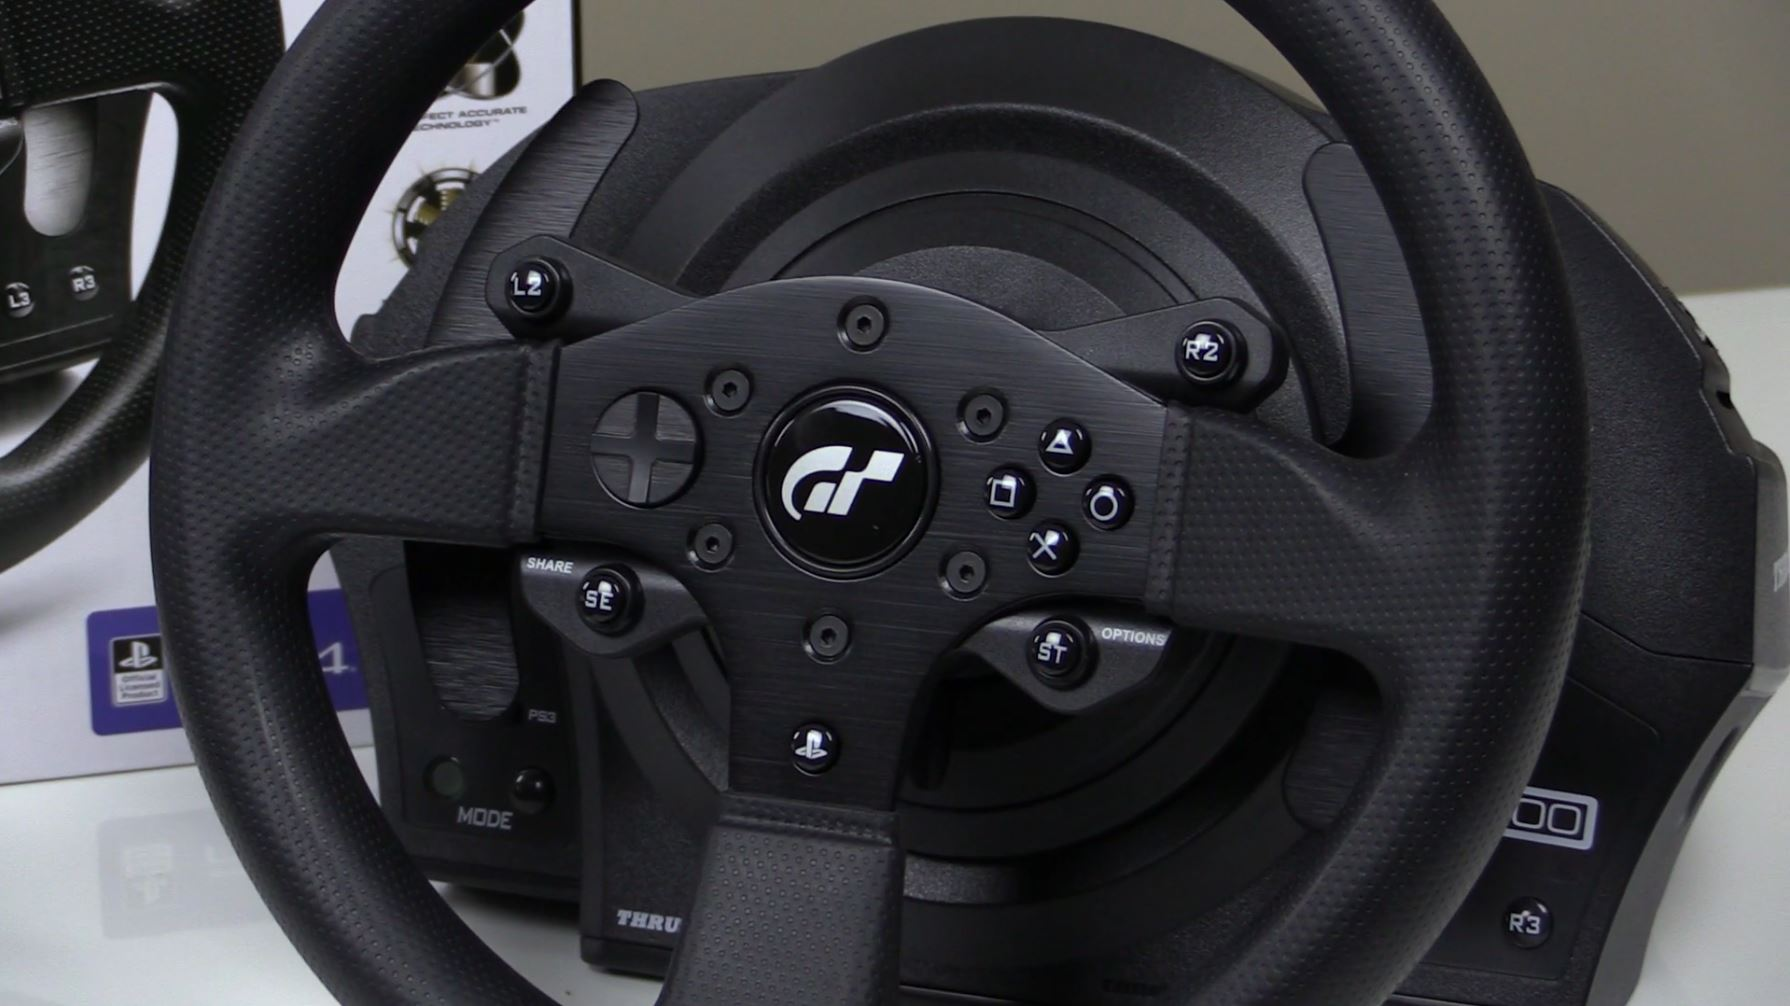 thrustmaster-t300-gt-edition-wheel-and-pedals-review-3